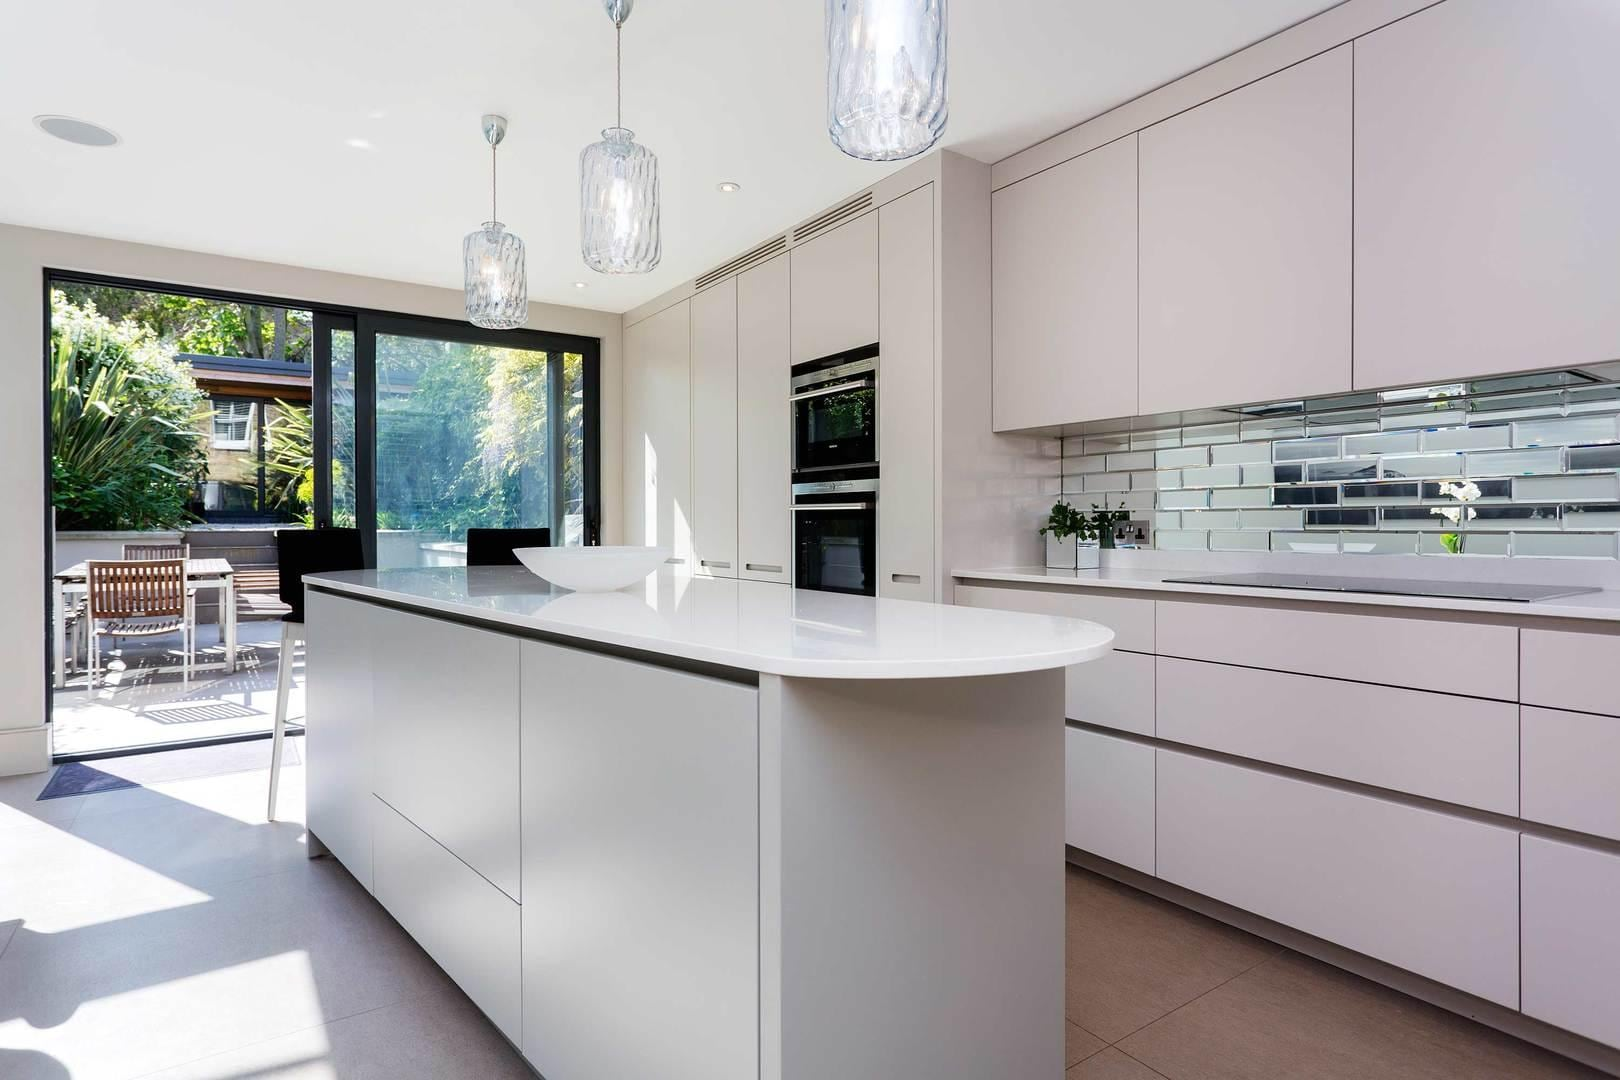 Property Image 2 - Stylish Modern Balham House with Private Garden